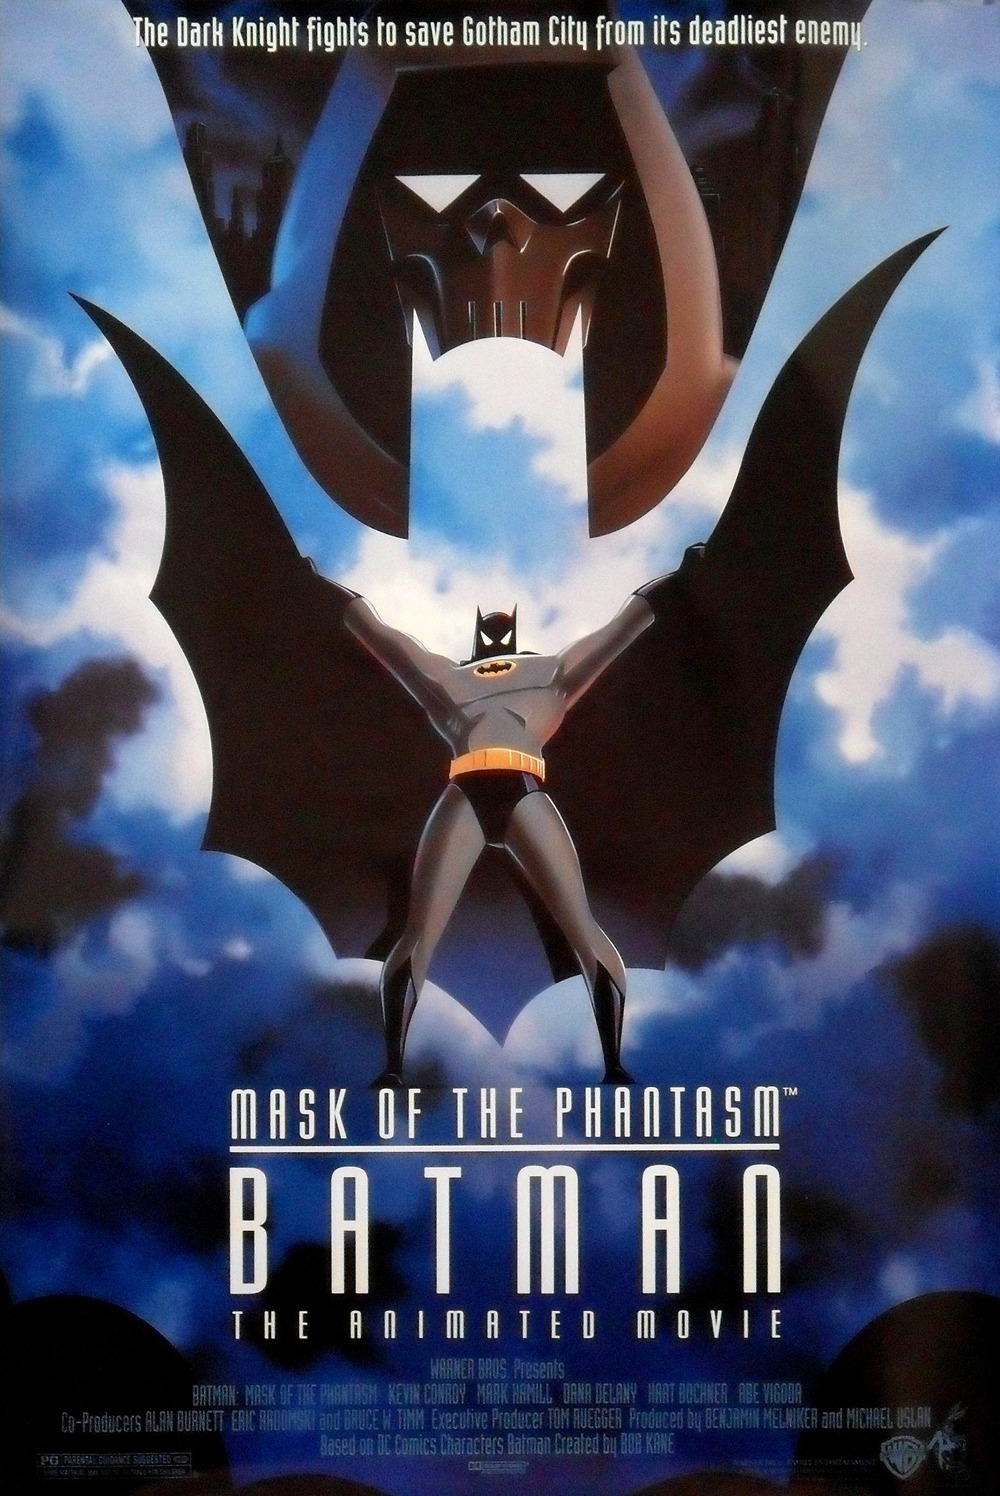 While I did not include Mask of the Phantasm, mainly because it was only ever released on 1,500 screens and for only about 7 weeks, it was still the best Batman movie of all time and it deserves some recognition...